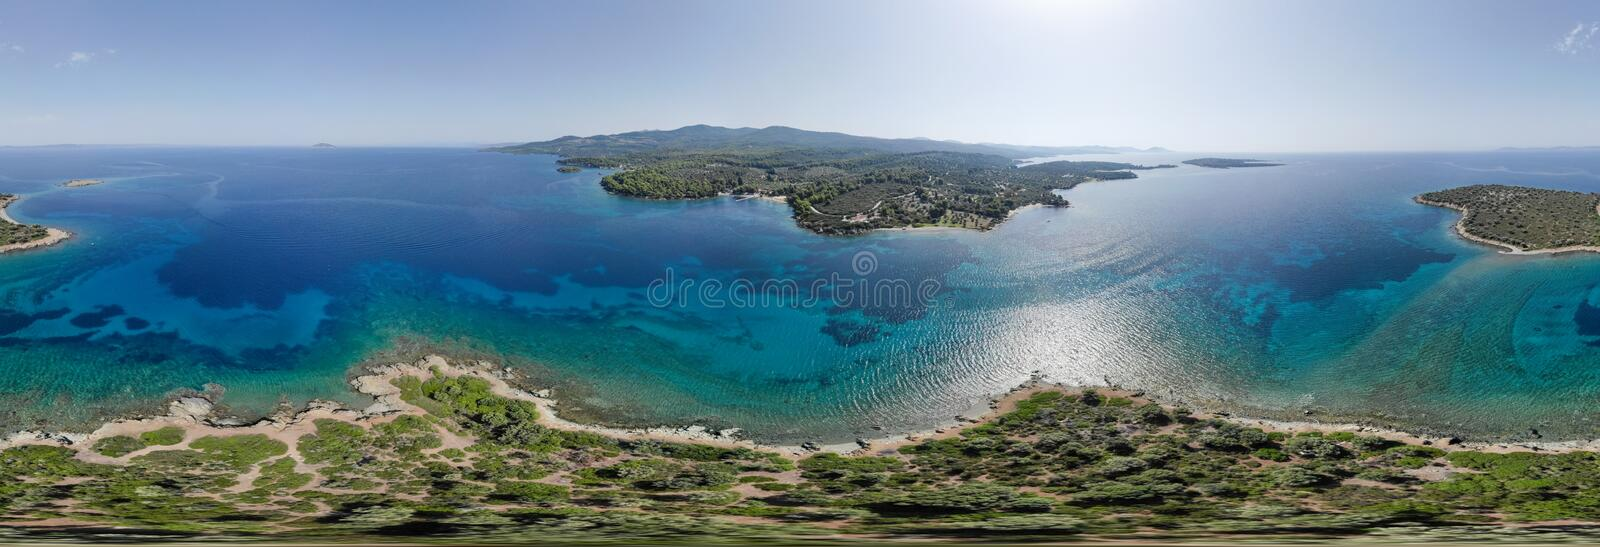 Drone aerial 360 panorama of island near sea shore.  royalty free stock photography